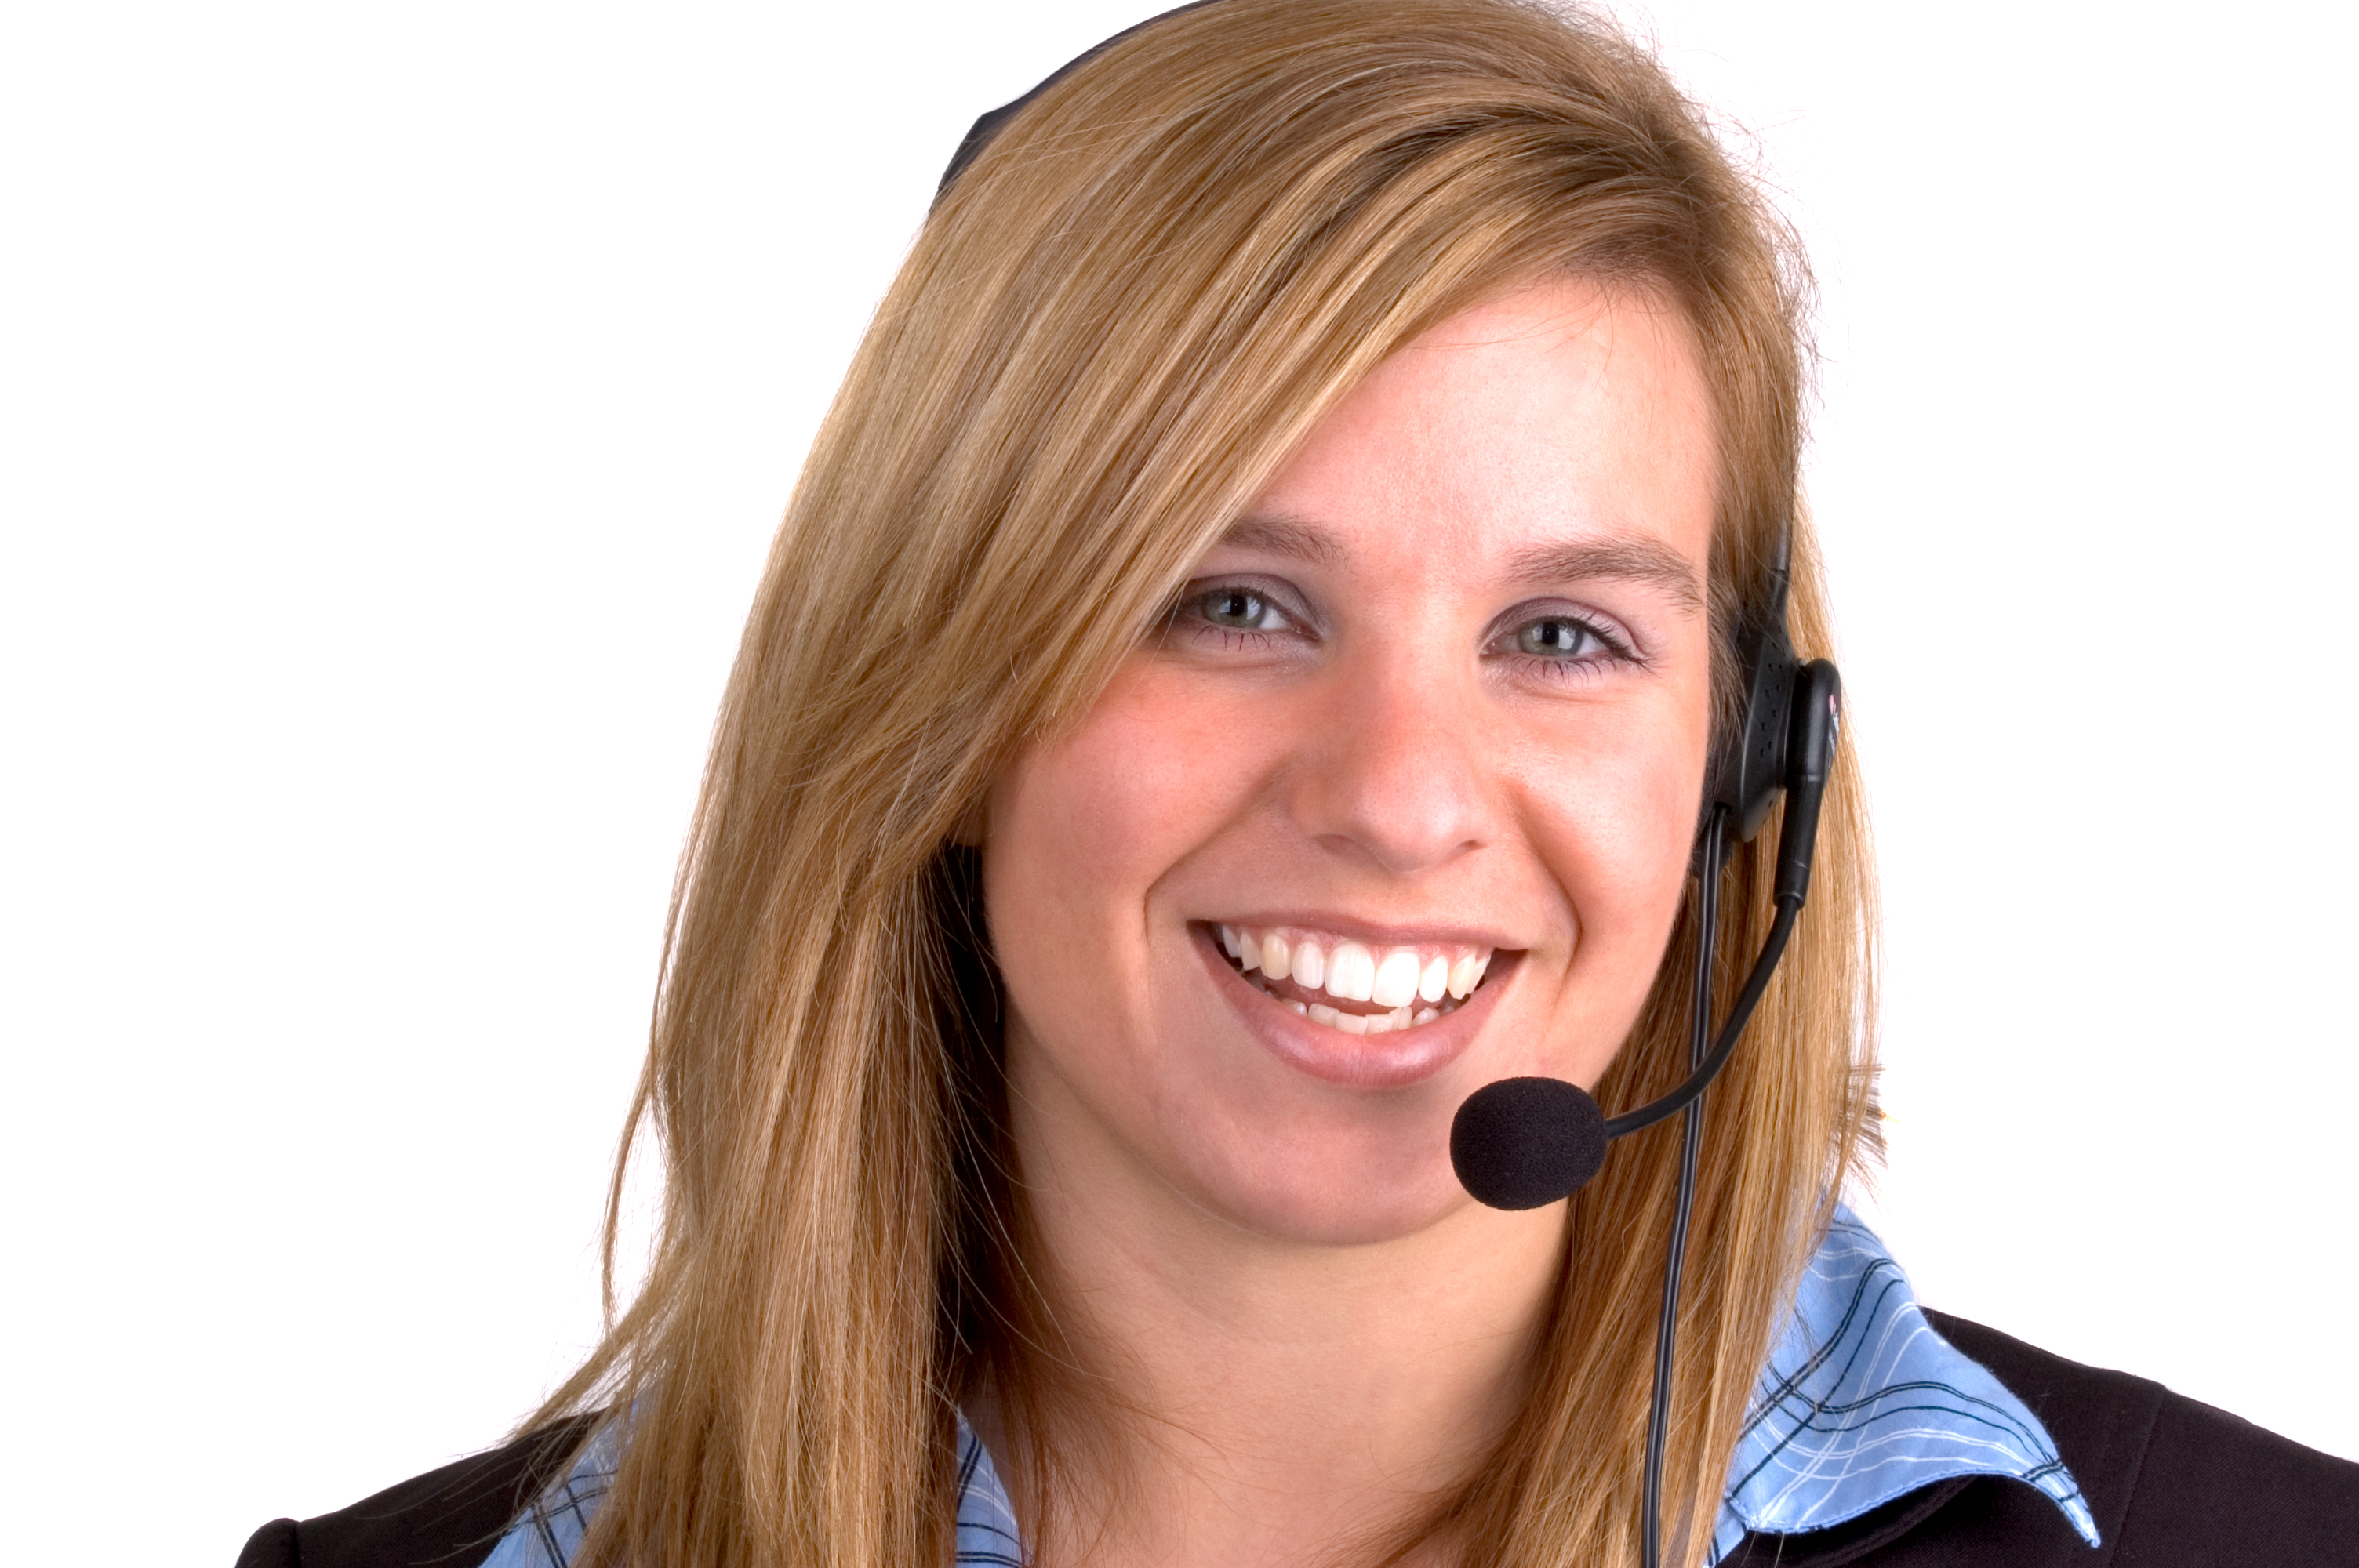 Attractive Blond Young Woman With A Telephone Headset